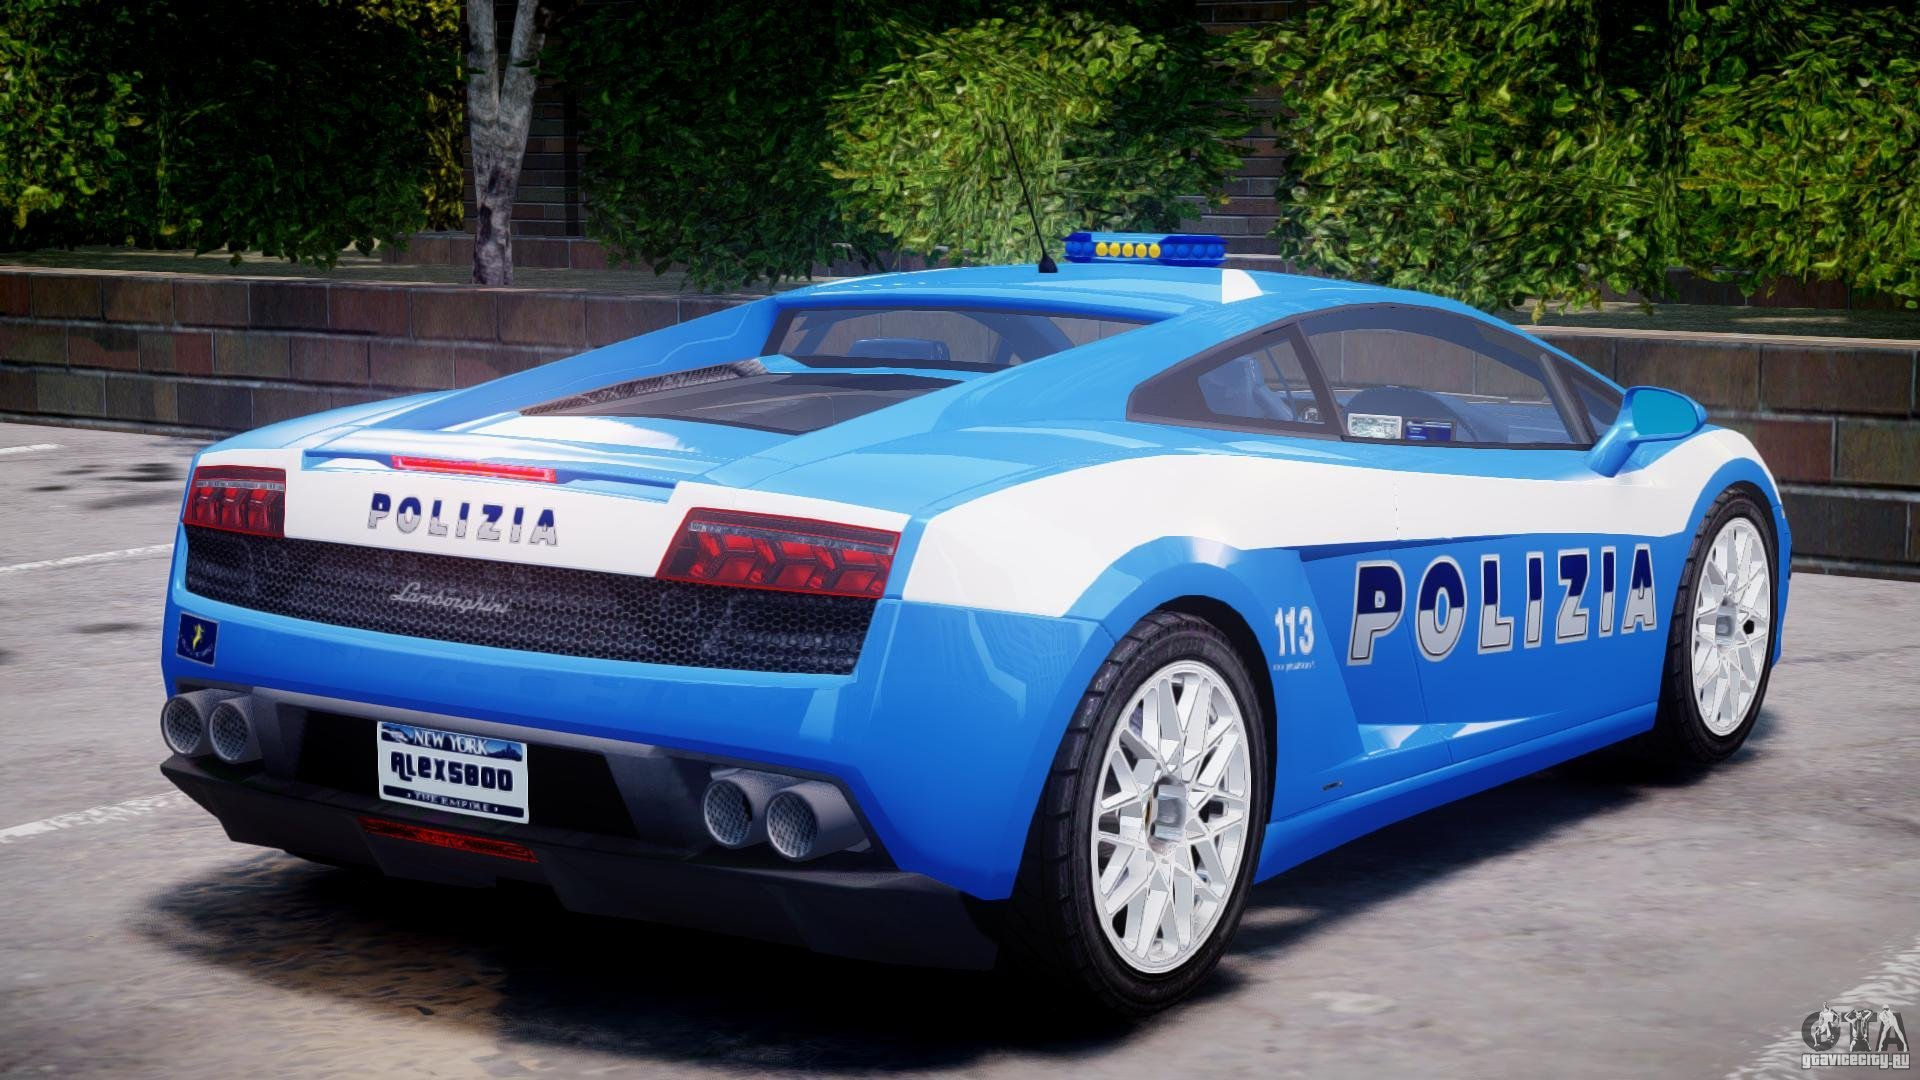 2018 Lamborghini Gallardo LP560 4 Polizia photo - 3